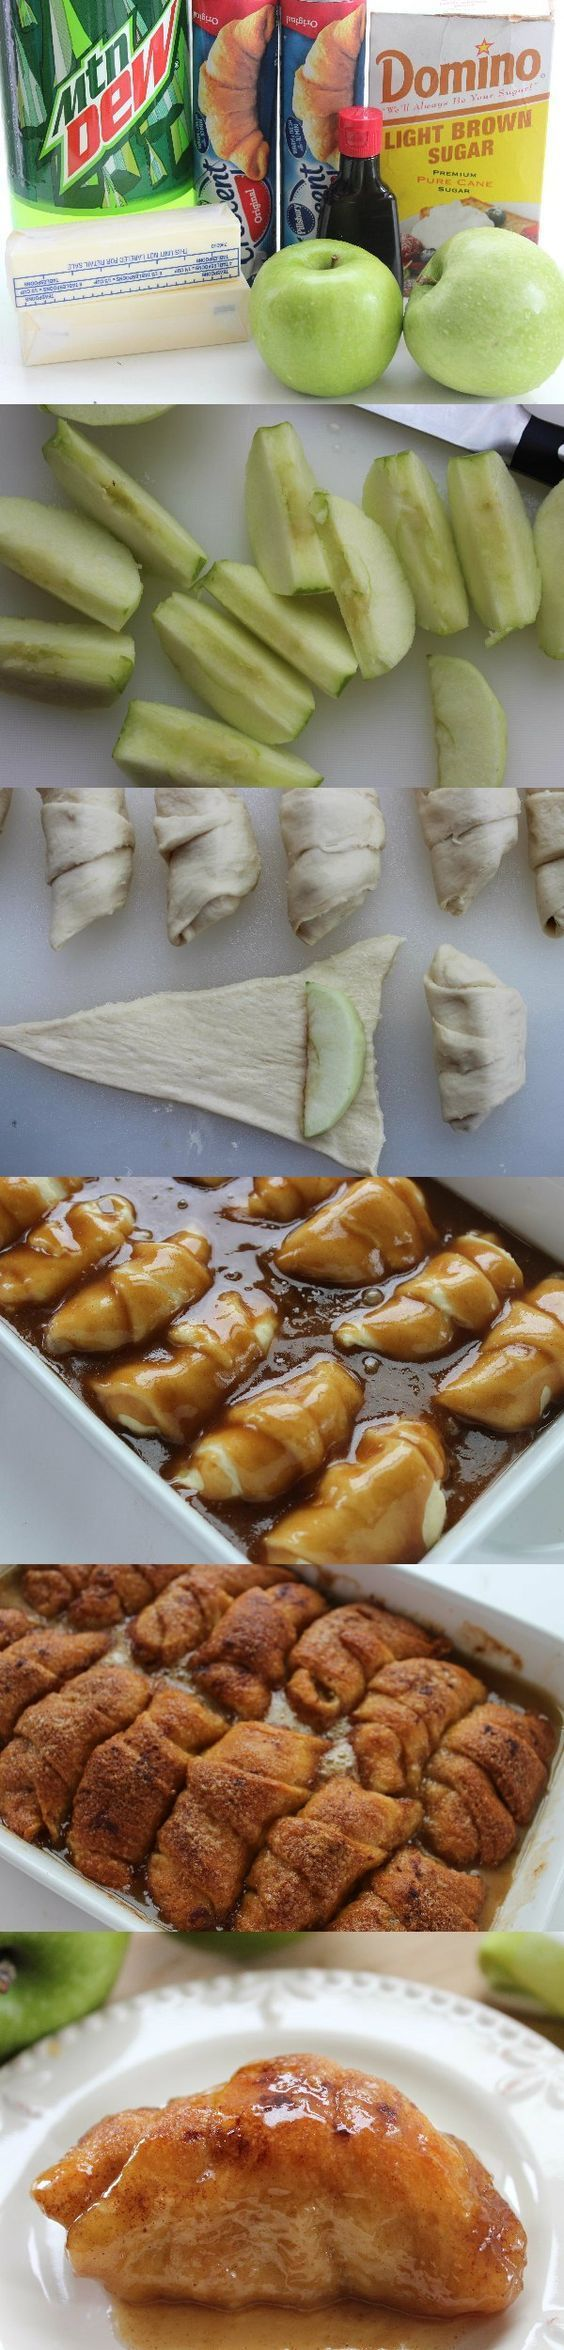 These Mountain Dew Apple Dumplings, with their crunchy outside and soft and gooey inside, are the perfect choice.  With fresh, juicy apples and crescent rolls that are the perfect combination of crunchy on the outside and soft and chewy on the inside, these crescent roll apple dumplings provide an incredible flavor and texture.